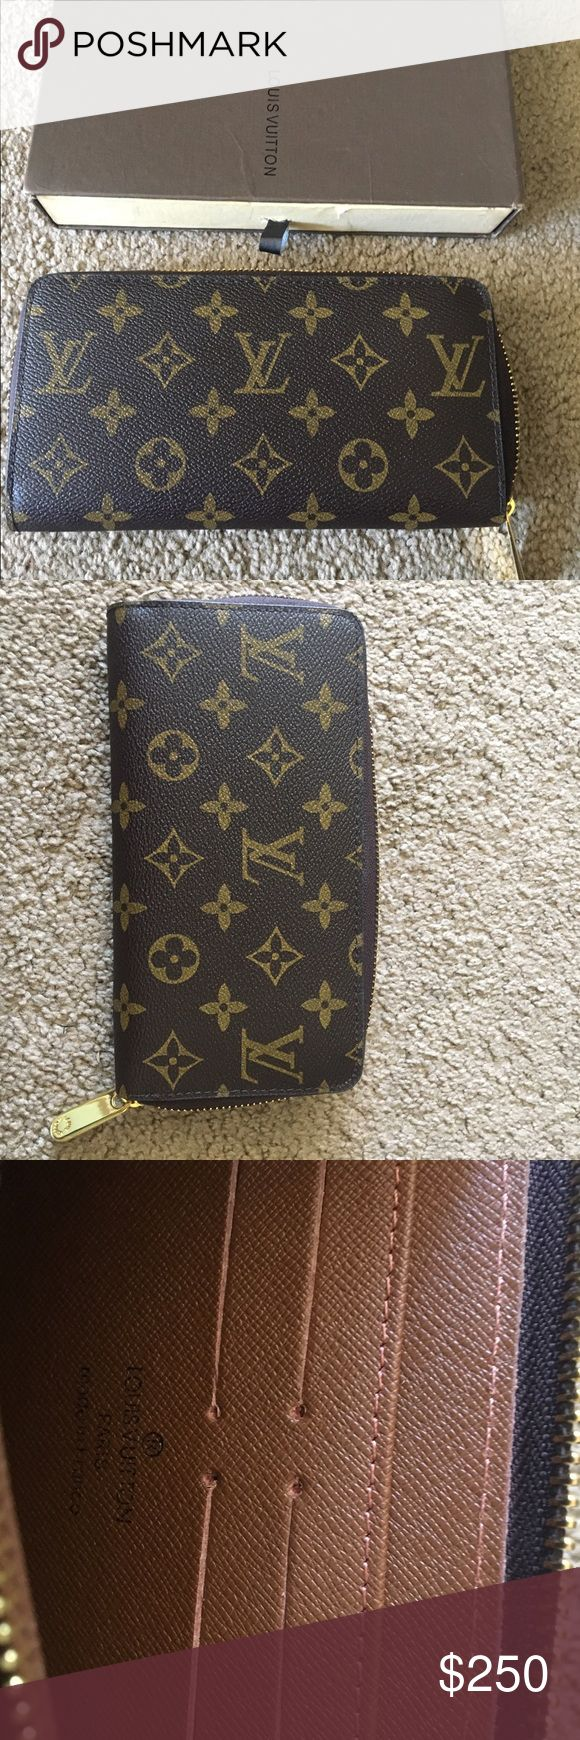 Louis Vuitton Zippy Monogram Wallet Louis Vuitton Monogram Zippy Wallet , in great condition. I have used it for about 4 months . I just switches to the black and gray checkered set so hope someone would get to enjoy this :) Louis Vuitton Bags Wallets